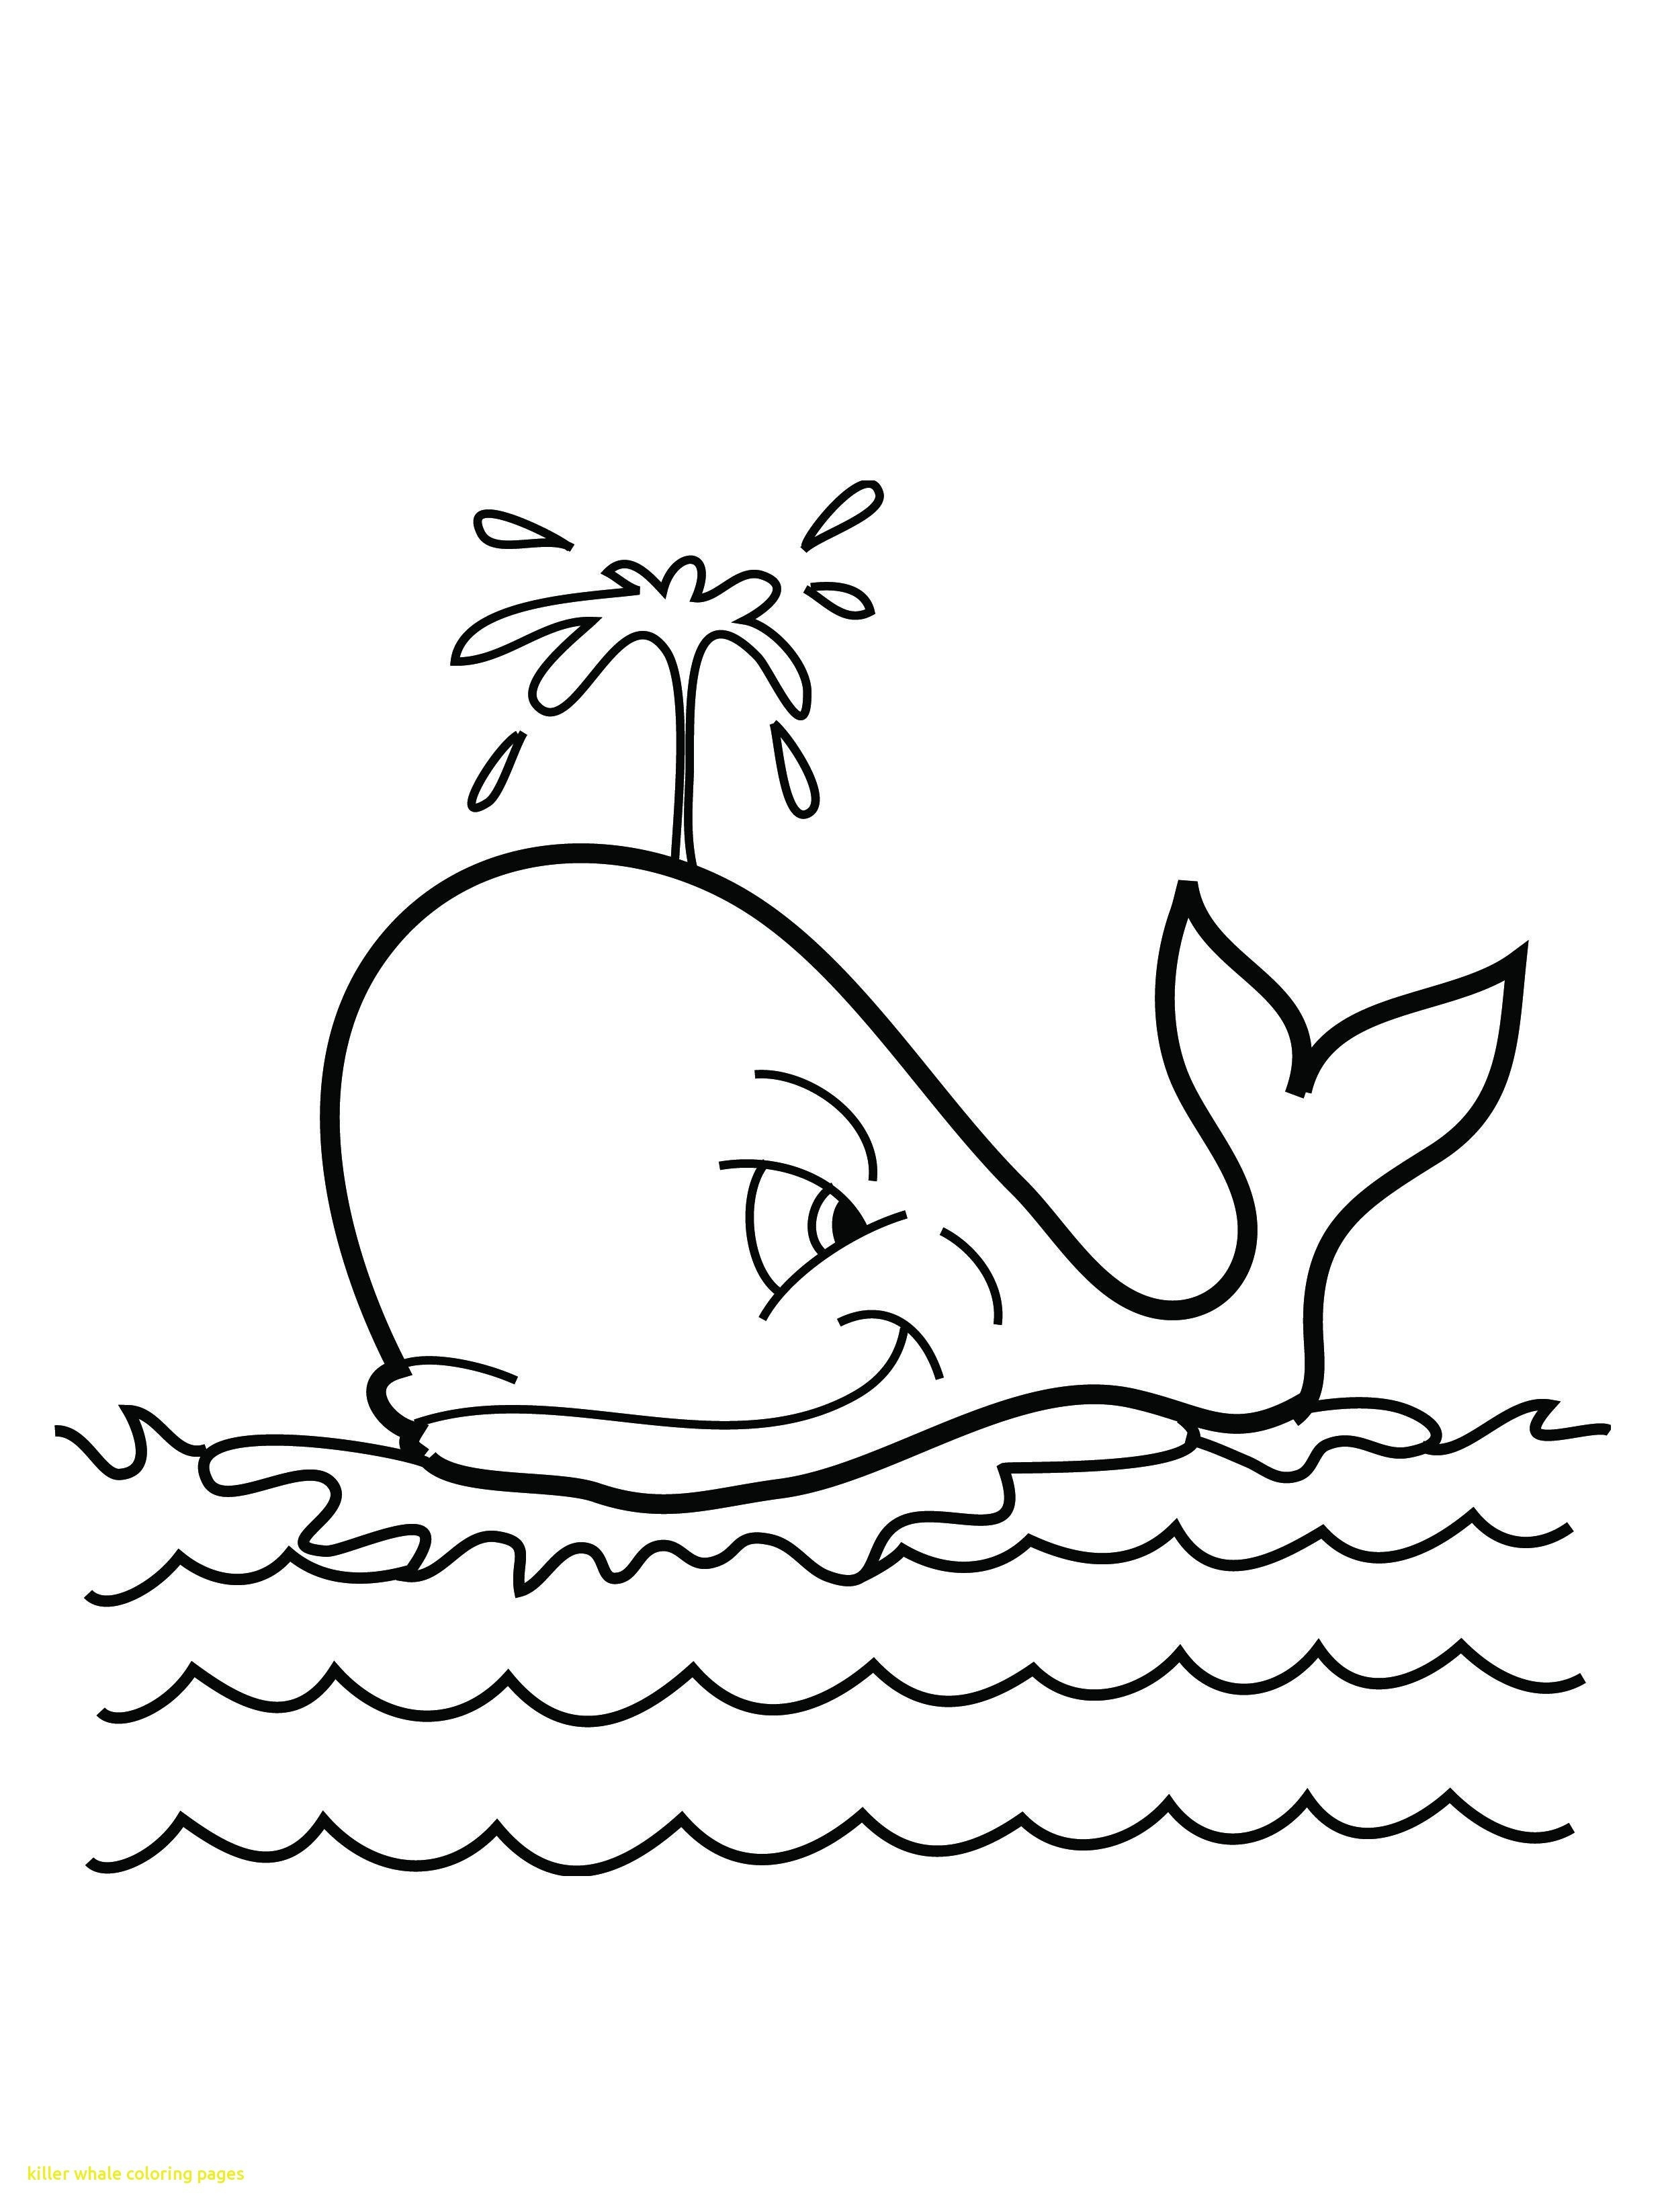 Orca Coloring Pages Whale Coloring Pages Killer Whale Coloring Pages - Free Printable Whale Coloring Pages